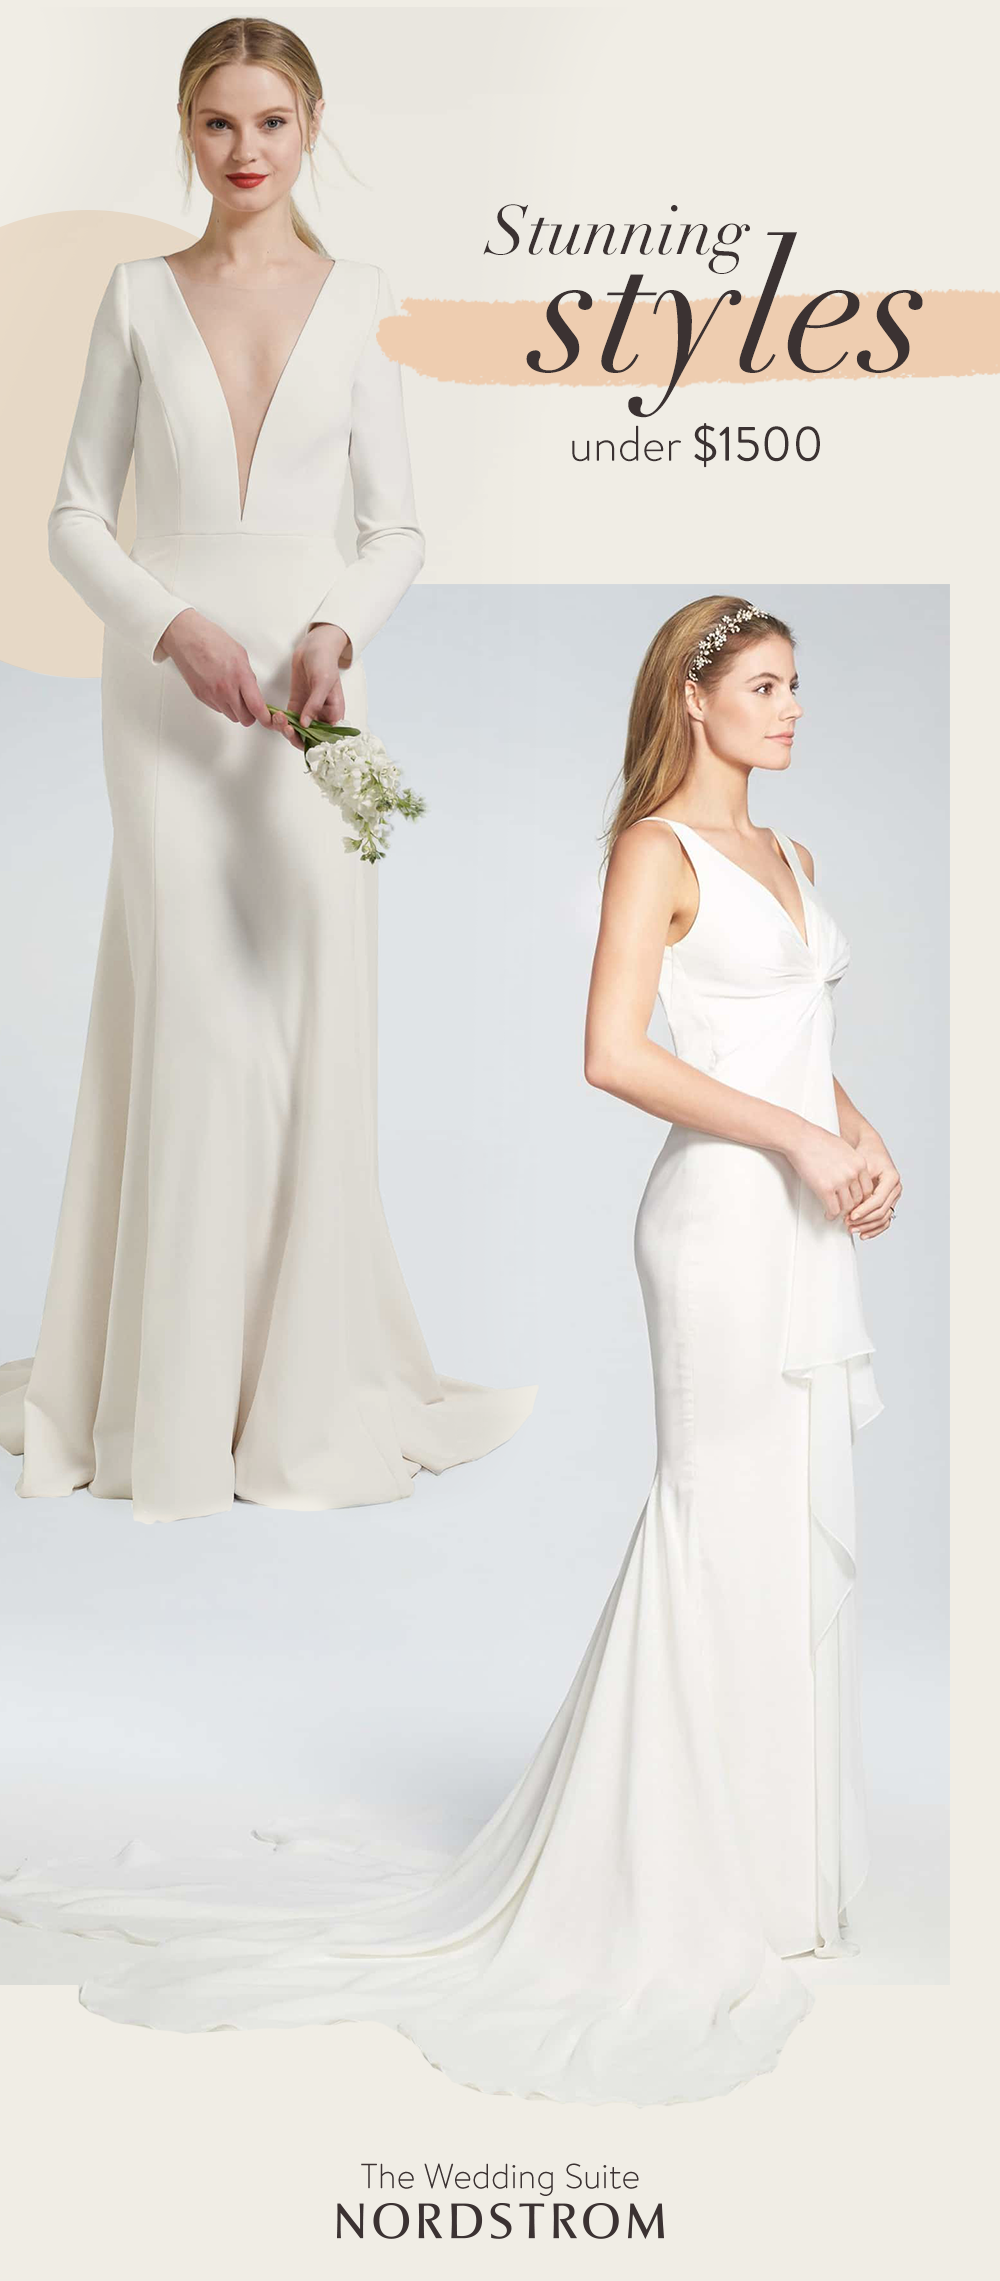 Rally Your Favorite People And Try On Gowns Beautifully Within Budget At The Nordstrom Wedding Suit Wedding Dress Inspiration Wedding Suits Wedding Suit Styles